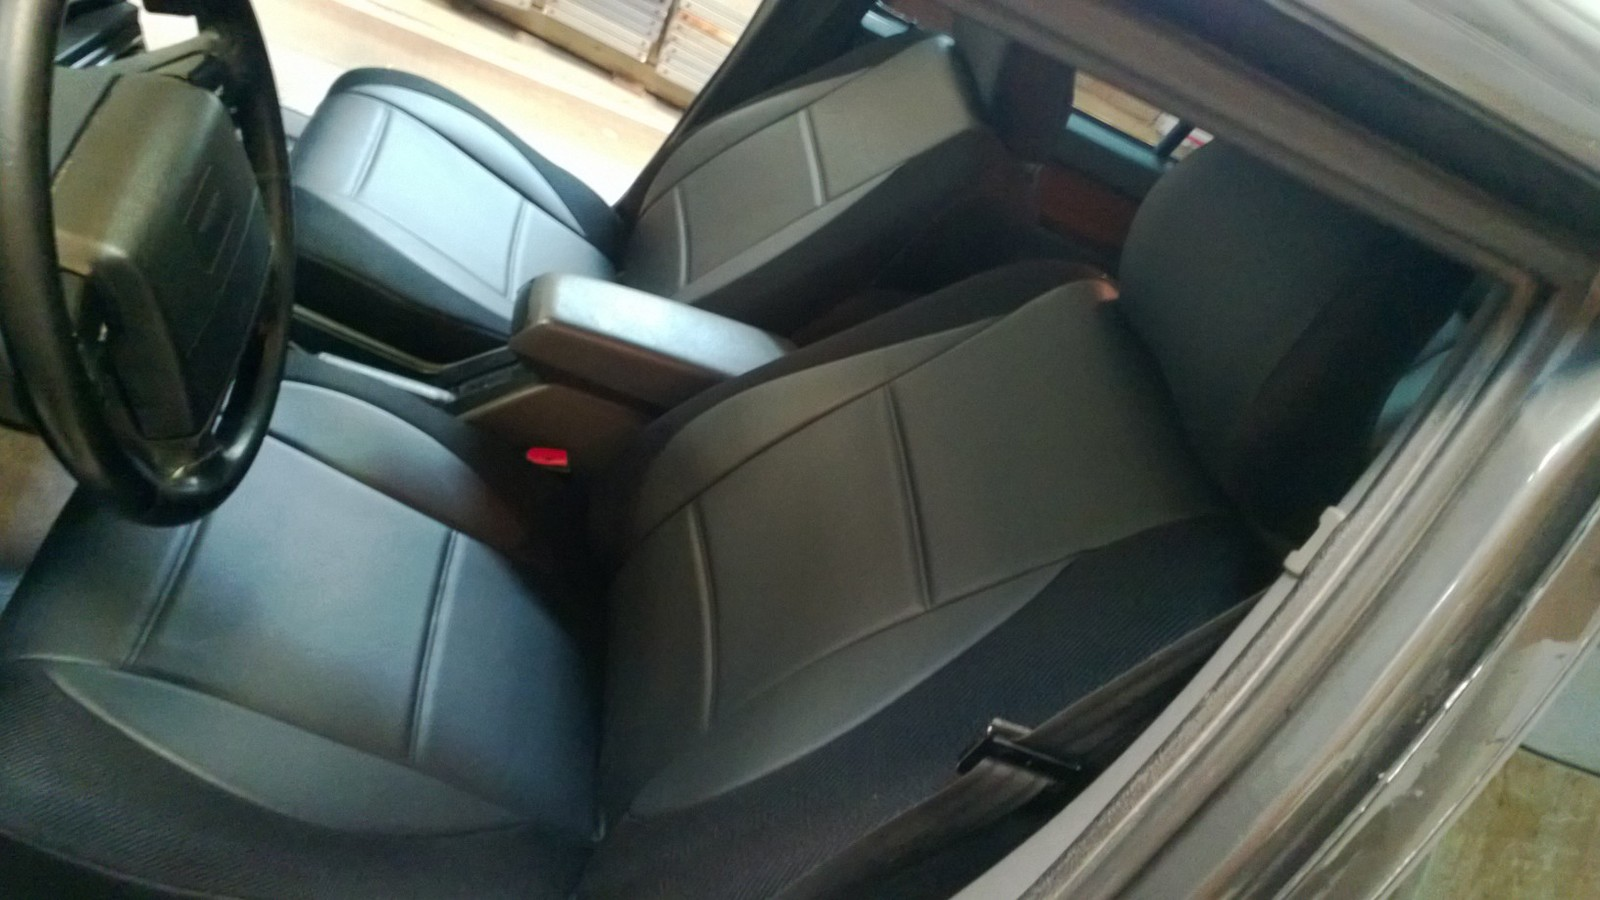 Ir V B additionally Maxresdefault likewise Parrot Ck Volvo S additionally Mw A together with Volvo V Dashboard. on 2004 volvo s40